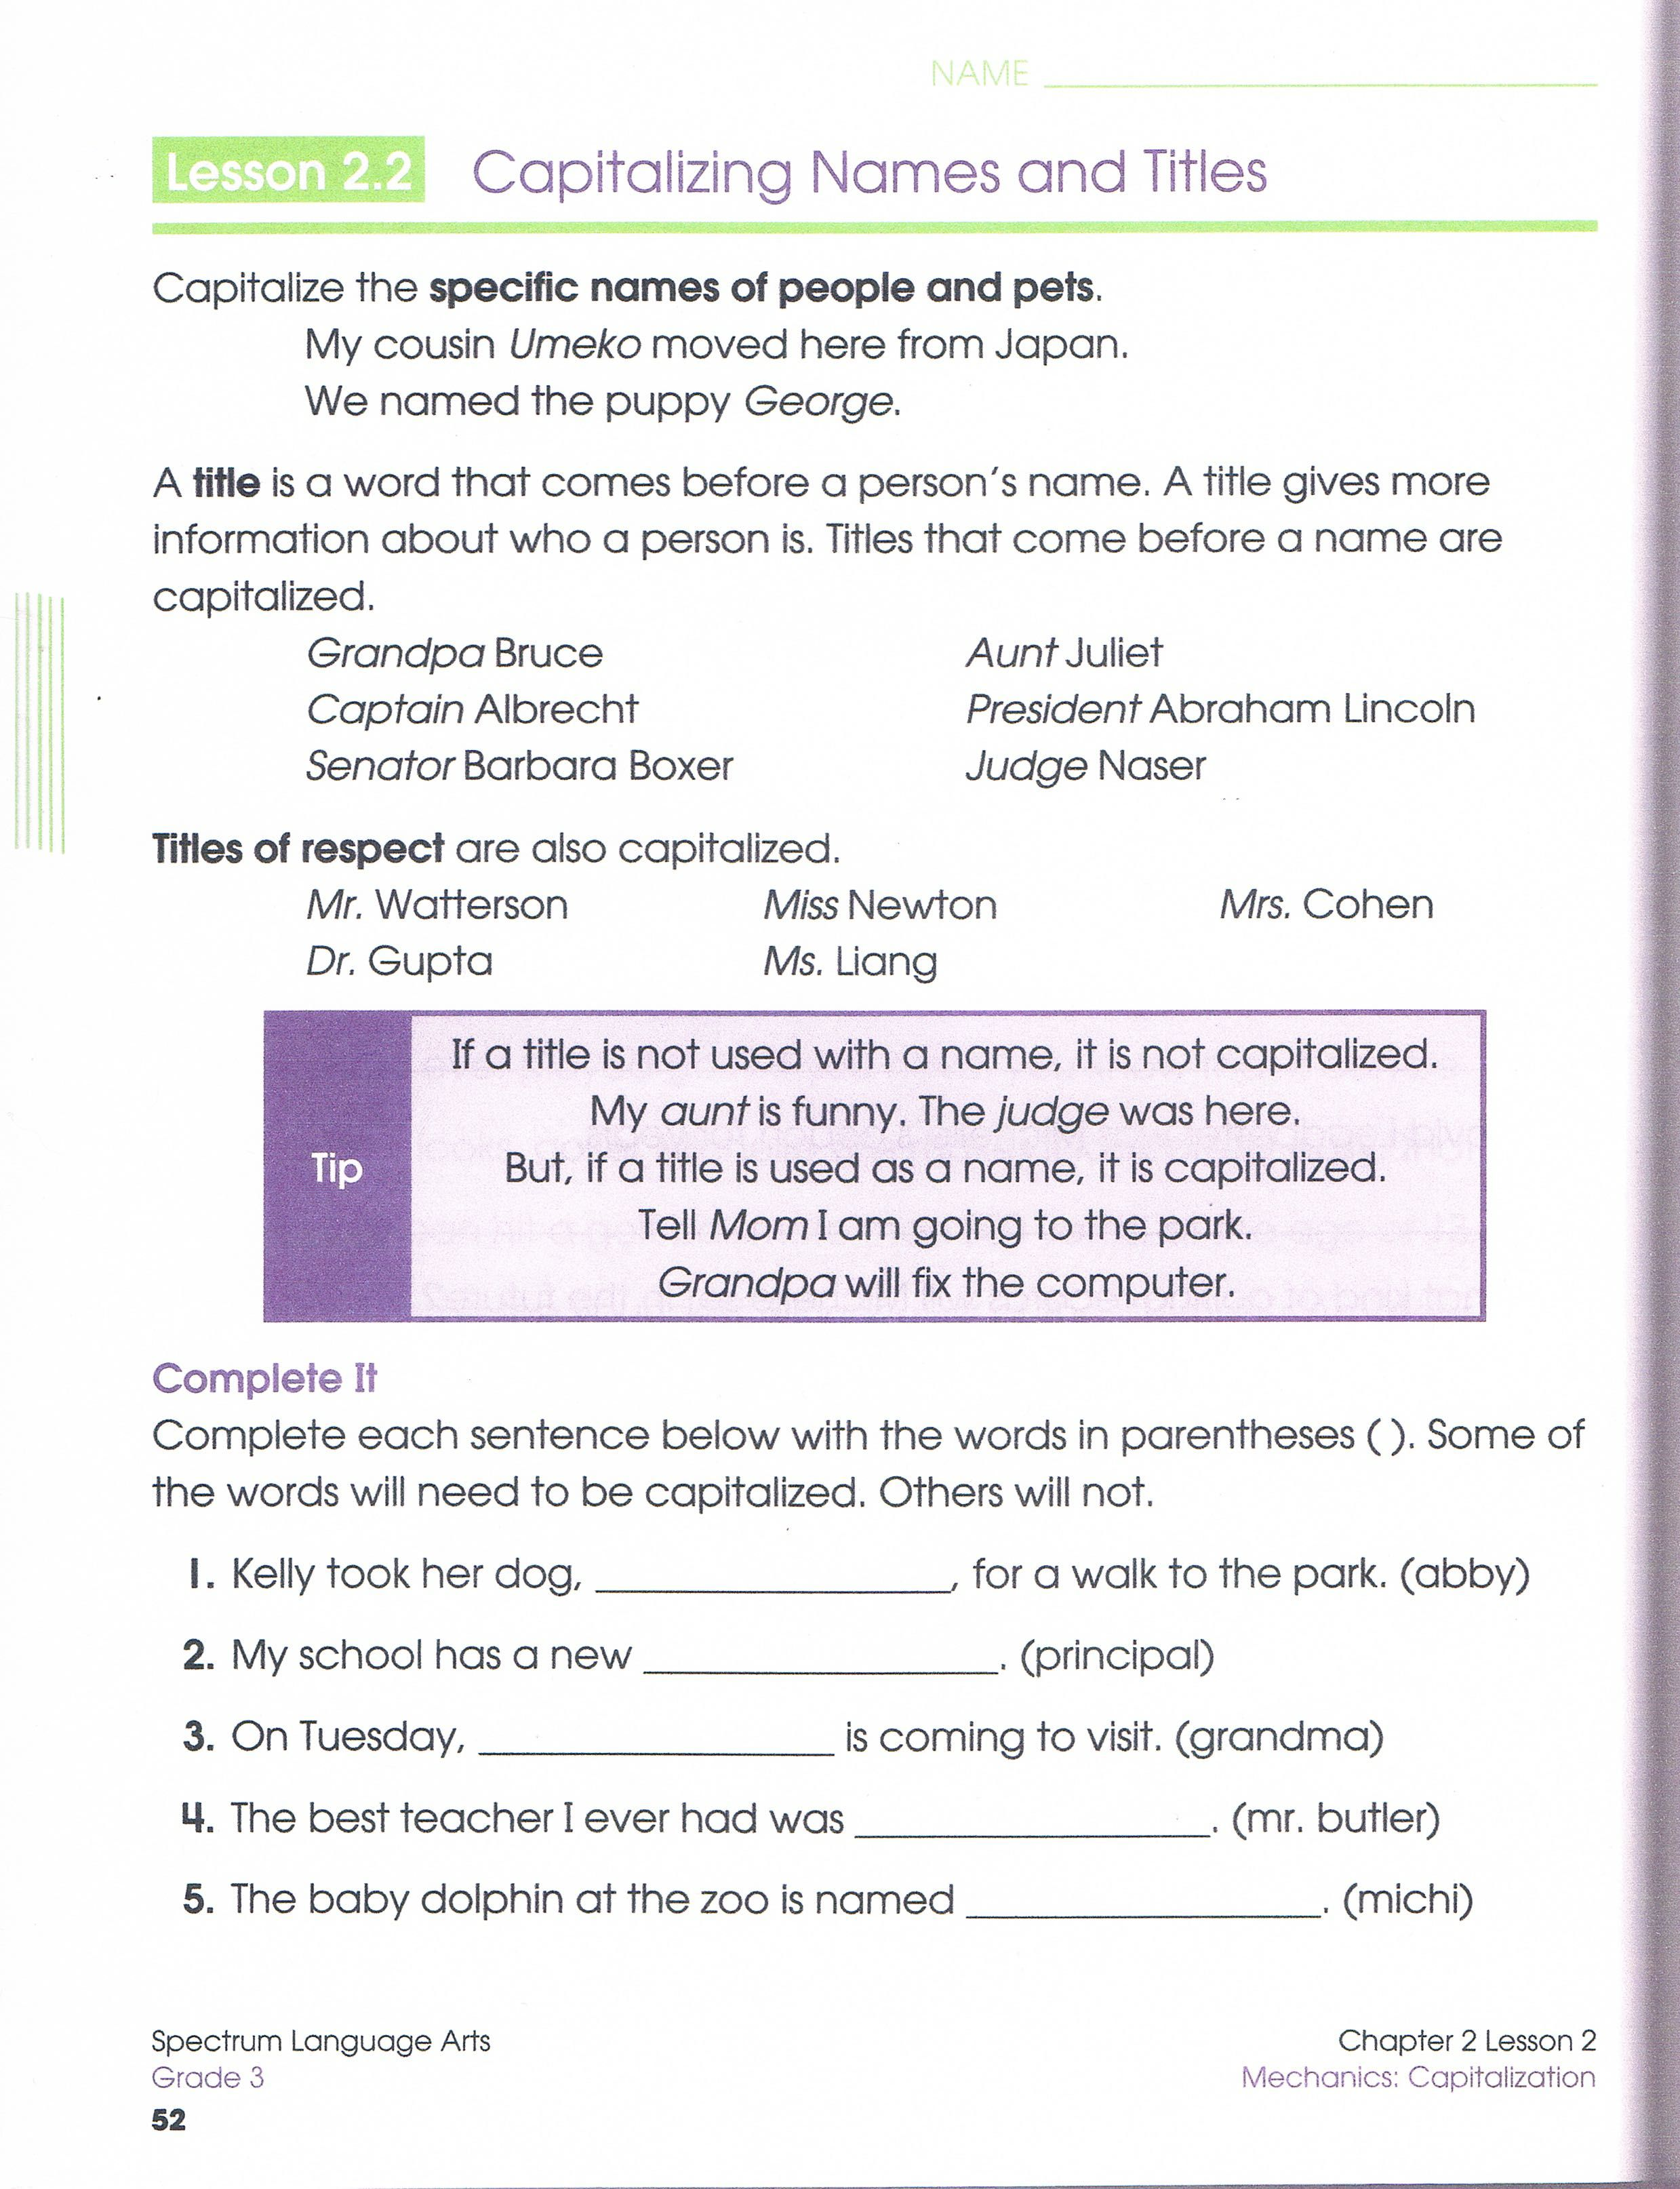 Worksheets Capitalization Worksheets For 4th Grade worksheet capitalization worksheets 4th grade fun i would use this as an introduction for it